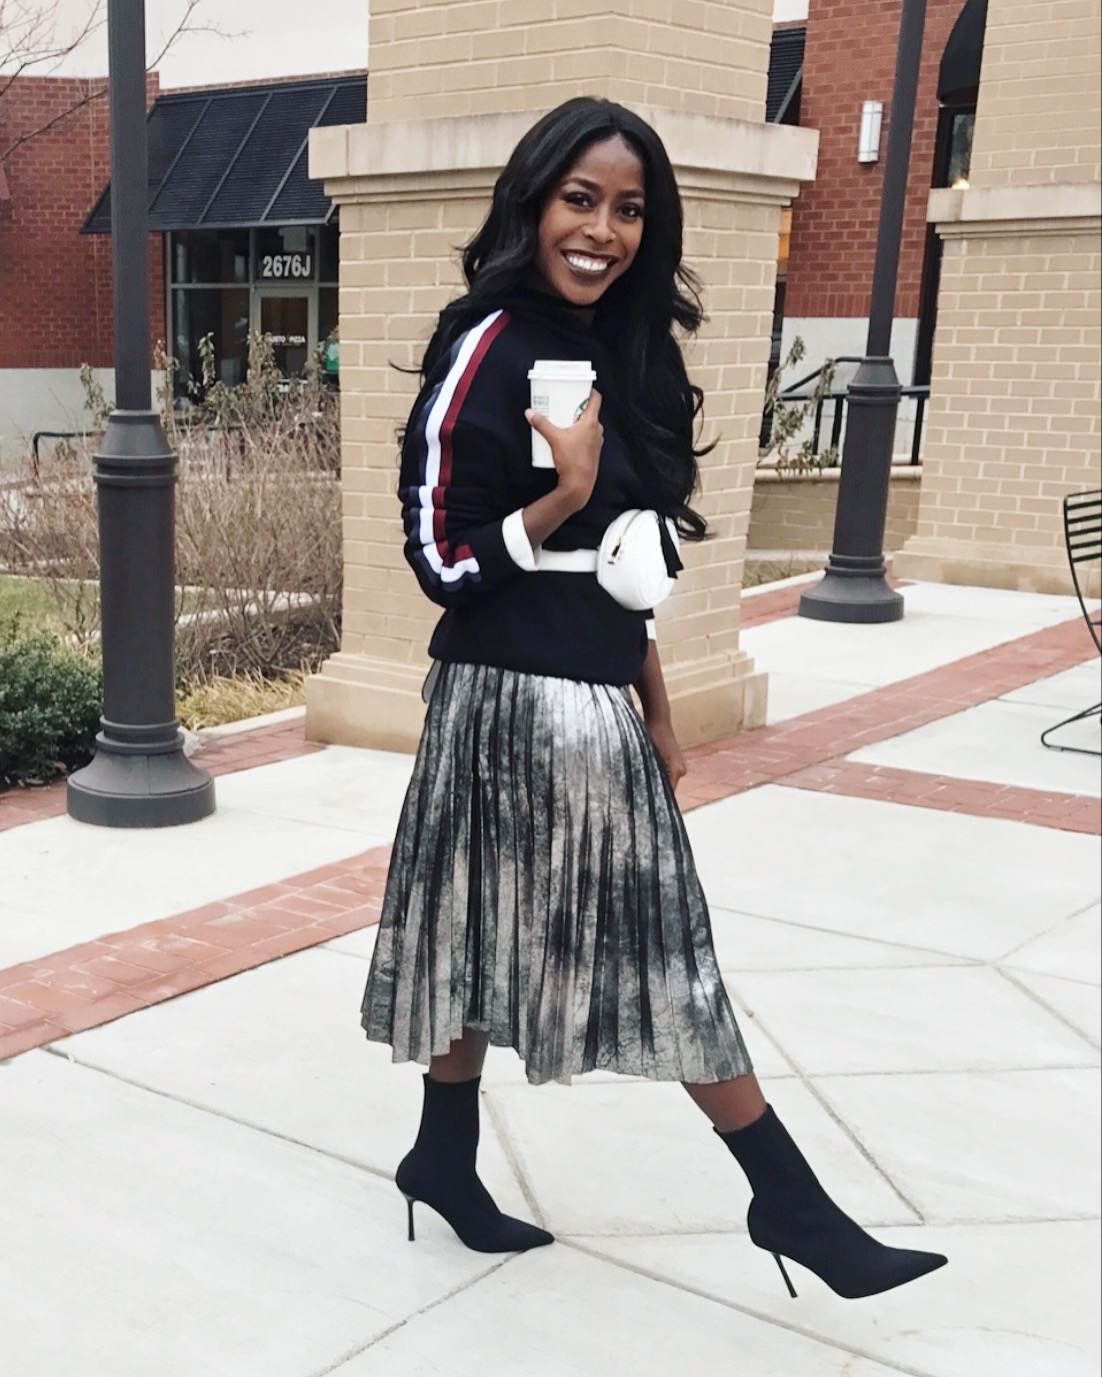 sock booties - Basically a heel that feels like a sock, stays up around my skinny ankle and goes with everything. They look great with skirts and dresses when you want to show a little leg but not distract too much. Now that its cold AF outside I love wearing these in the place of pumps, you get the same look but your feet stay warm!